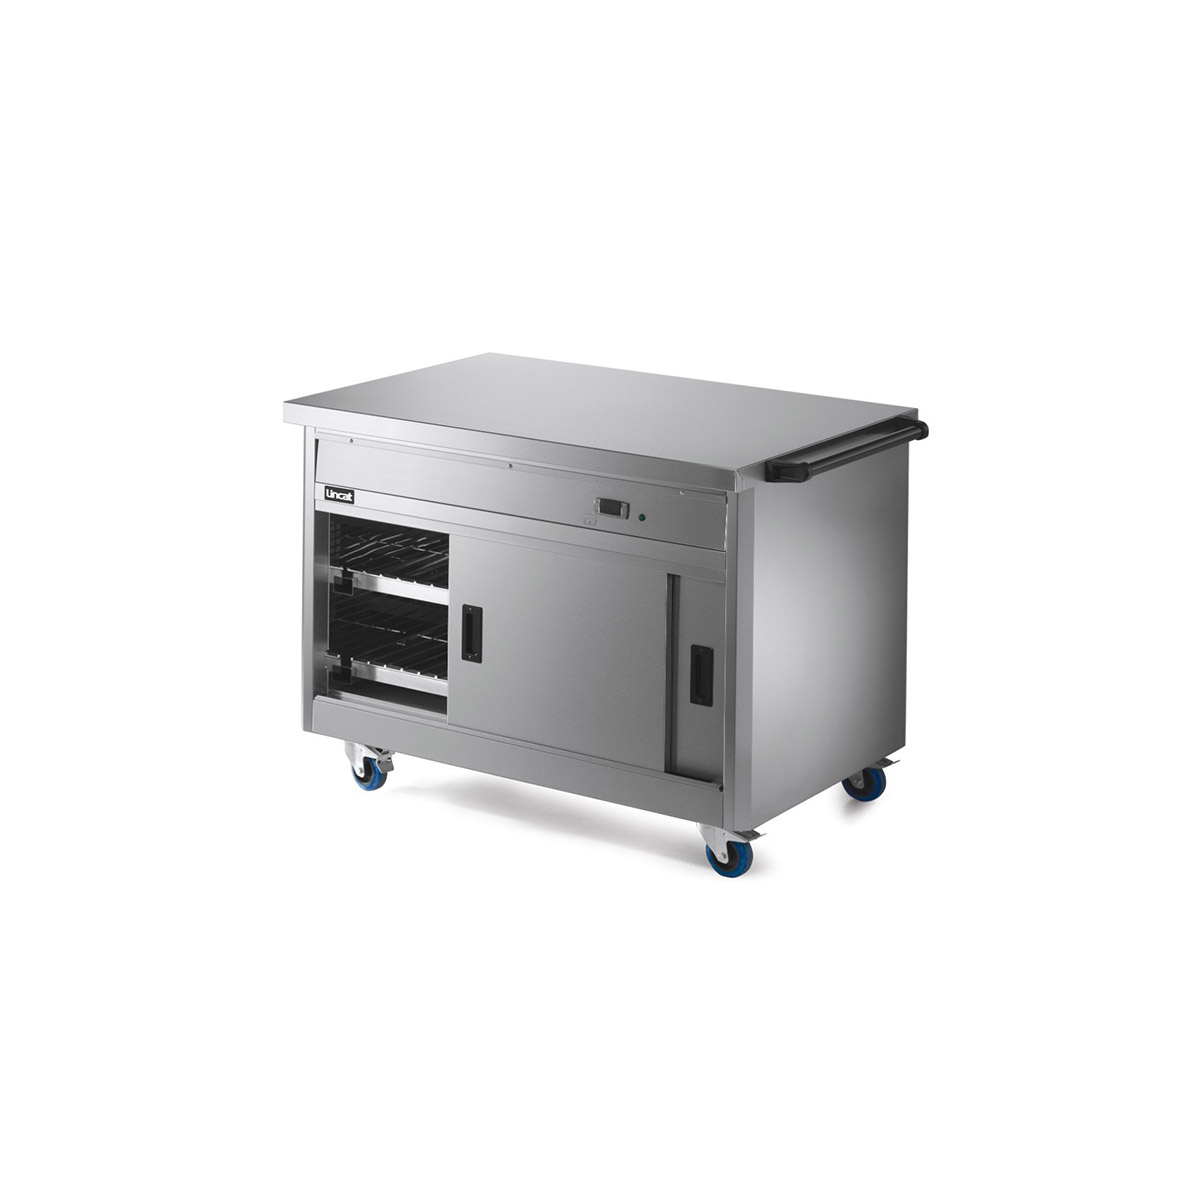 P8P3 - Lincat Panther 800 Series Free-standing Hot Cupboard - Plain Top - W 1205 mm - 1.5 kW